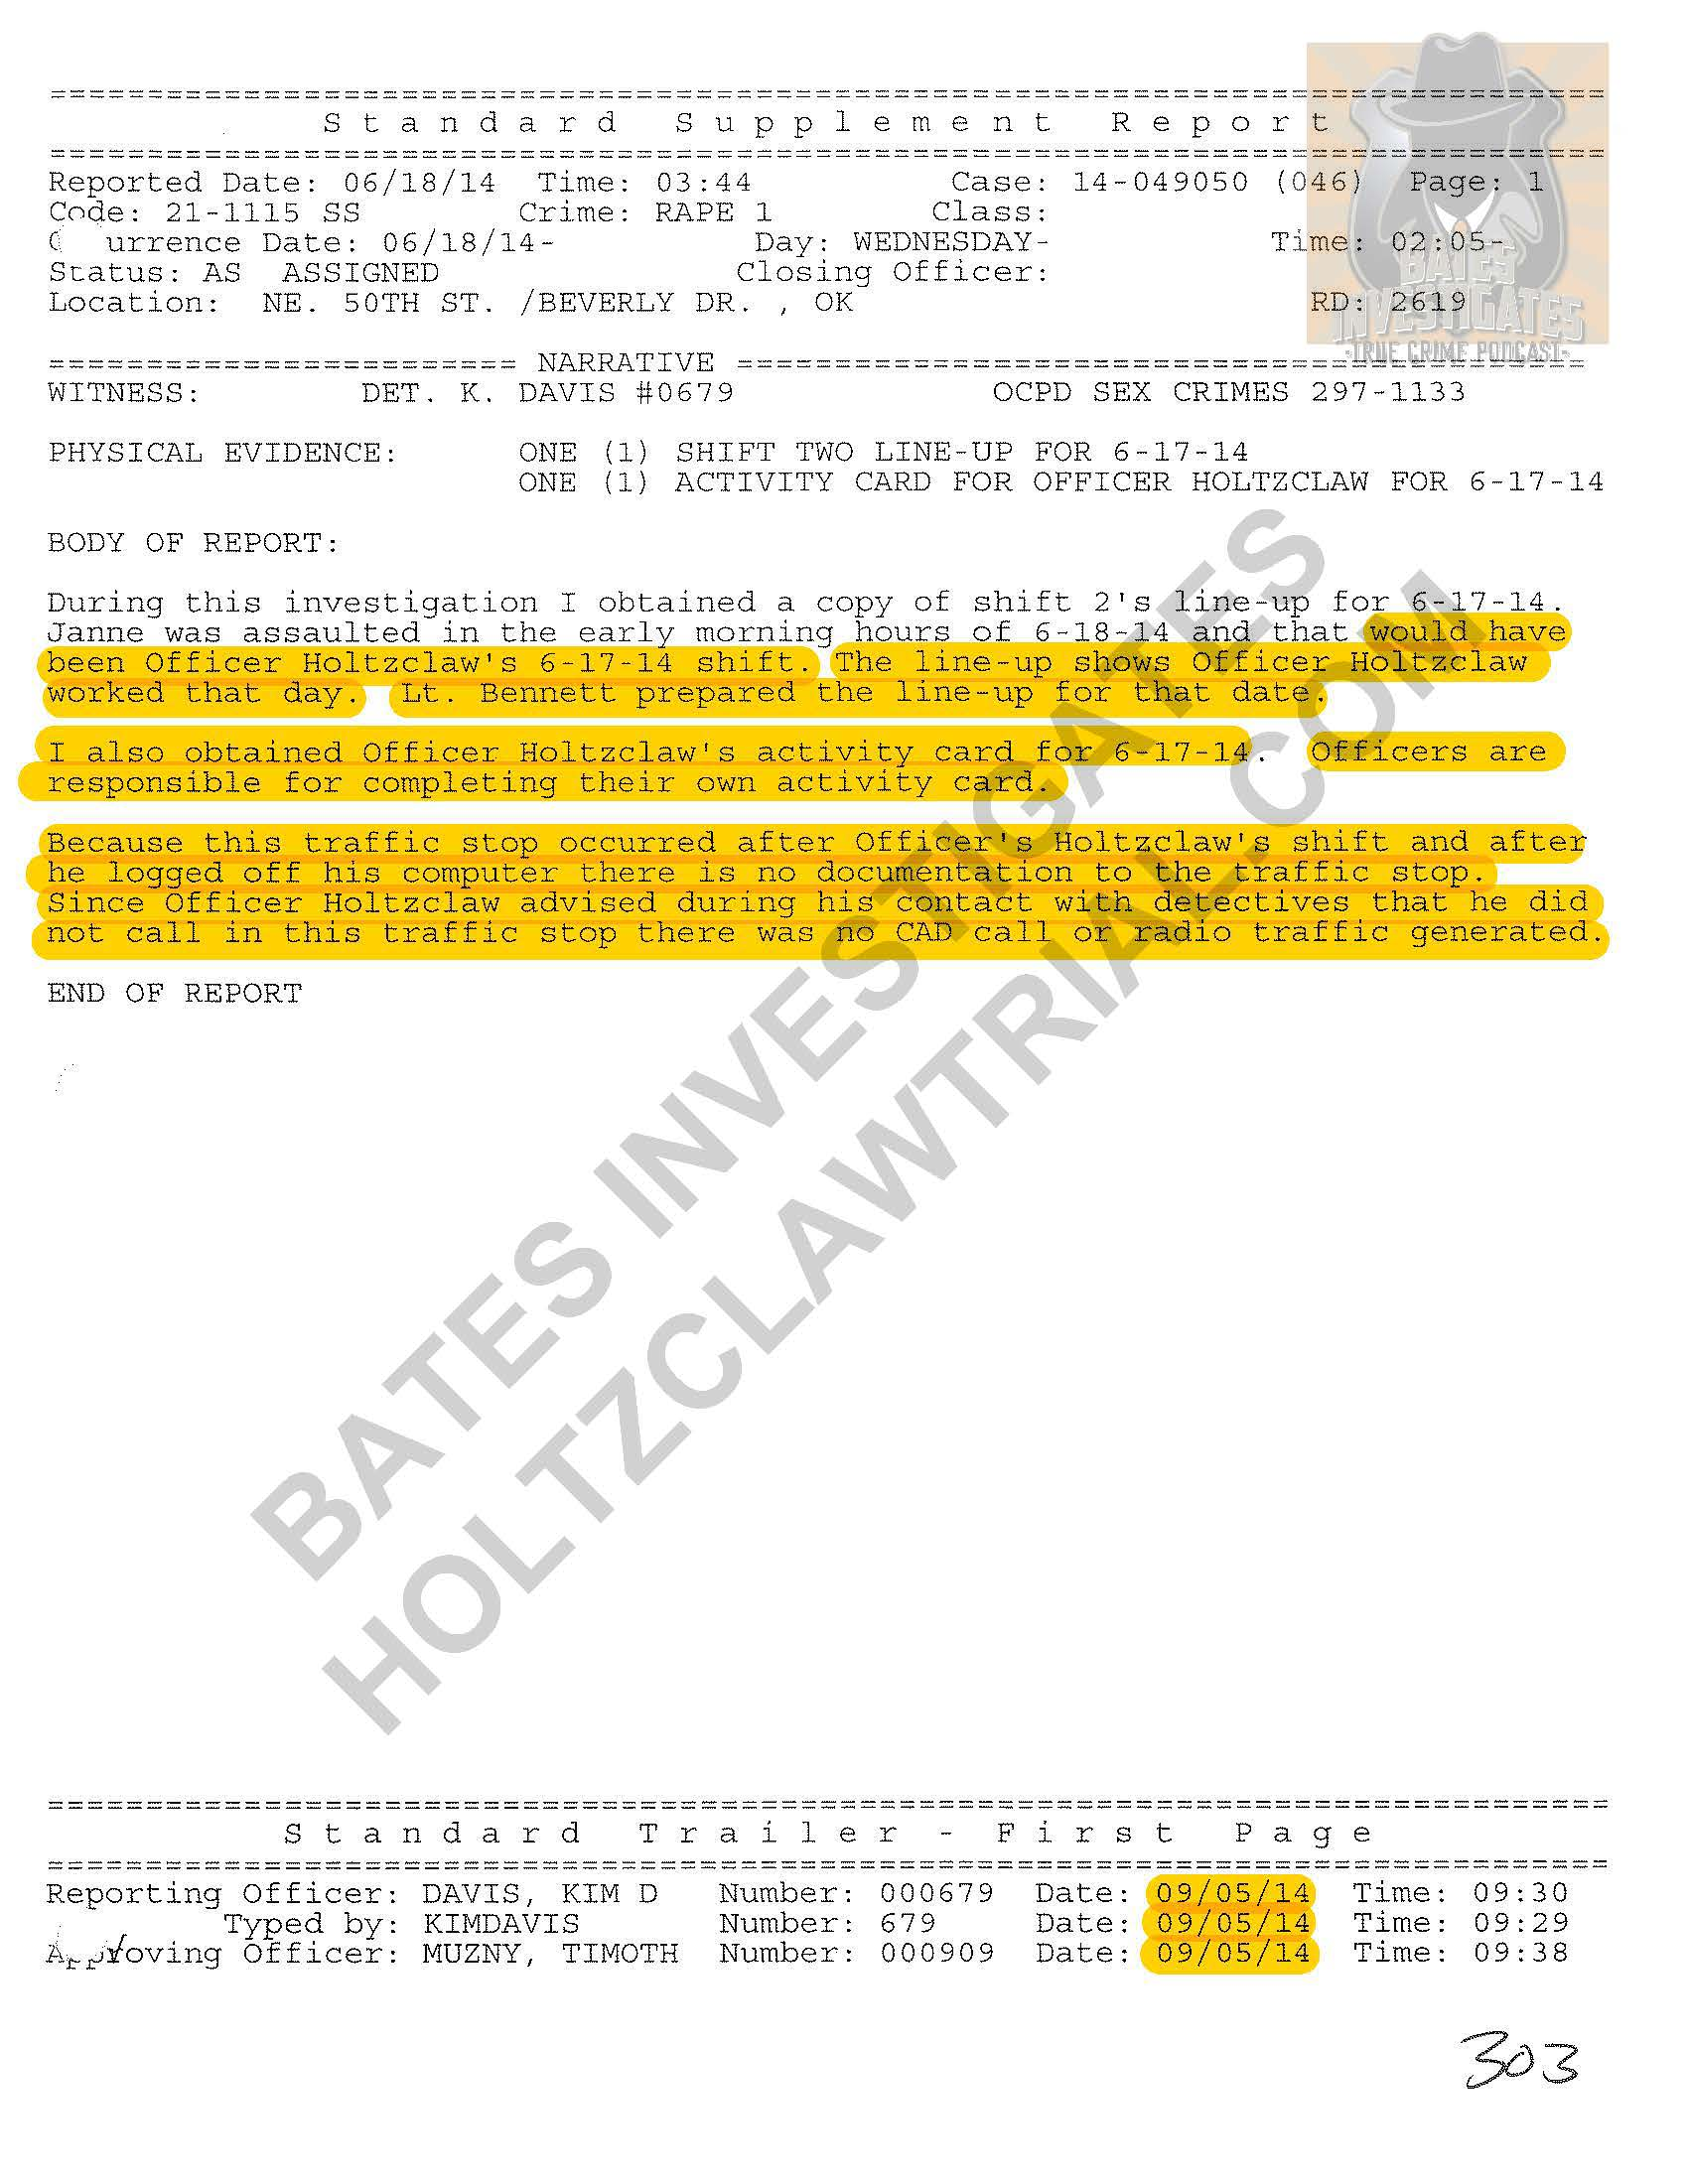 Holtzclaw - Ep02 - Police Reports Watermarked_Page_33.jpg